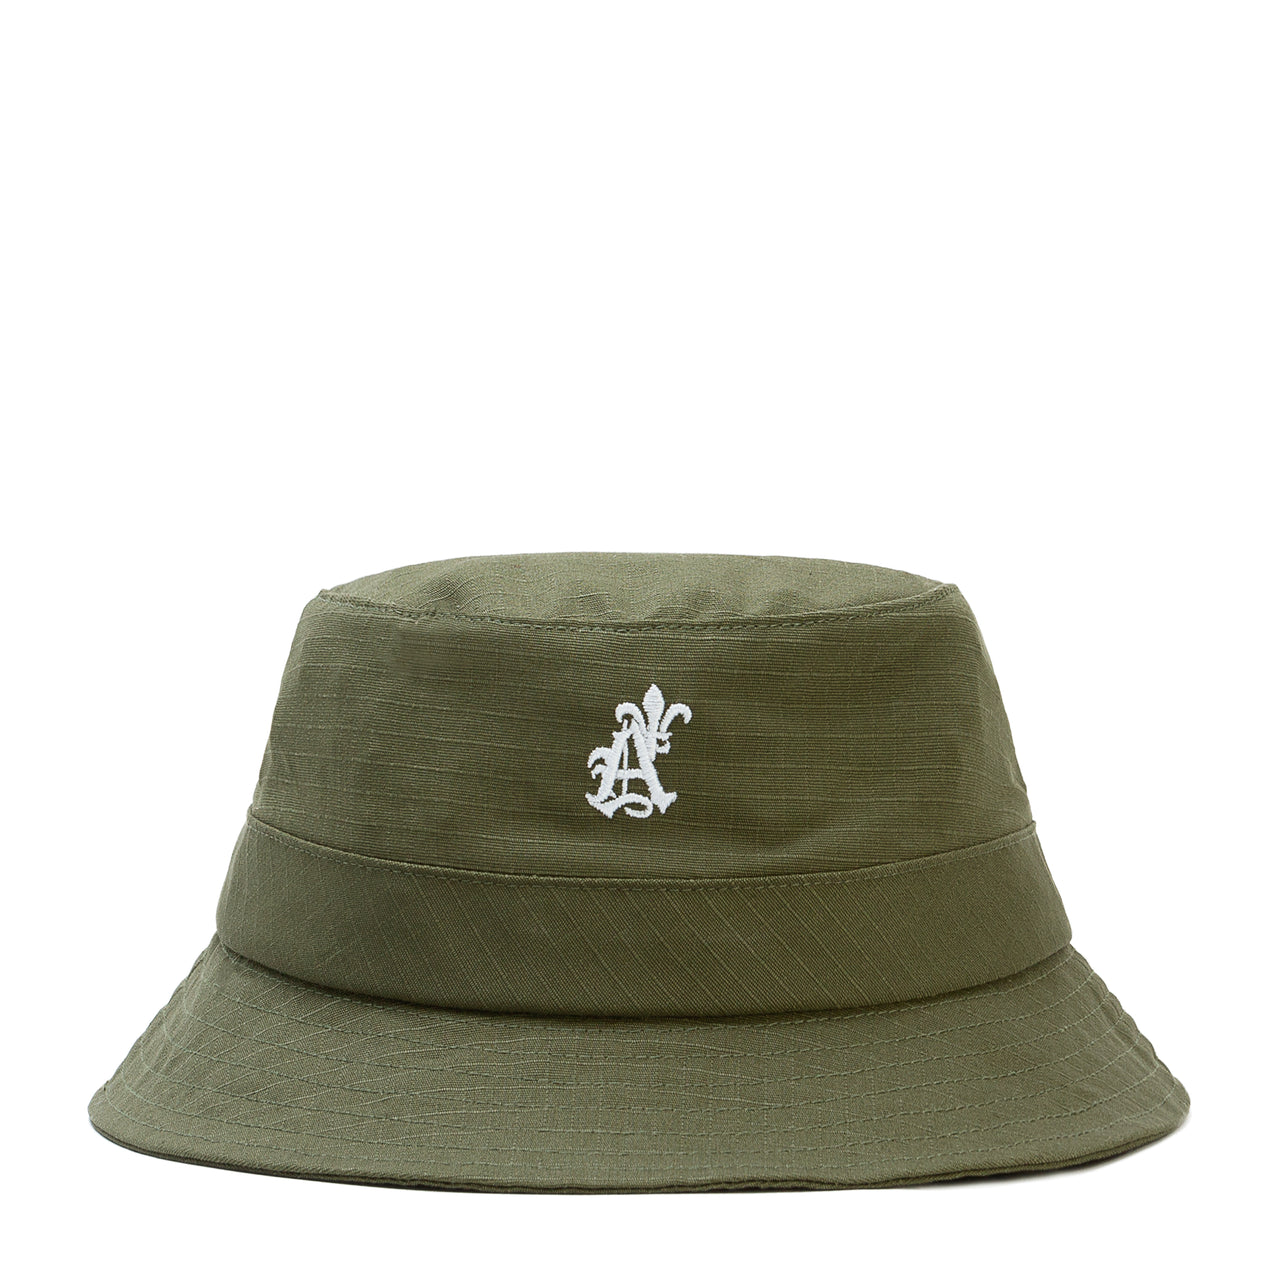 RIPSTOP 1P BUCKET HAT SU20 MADE IN USA